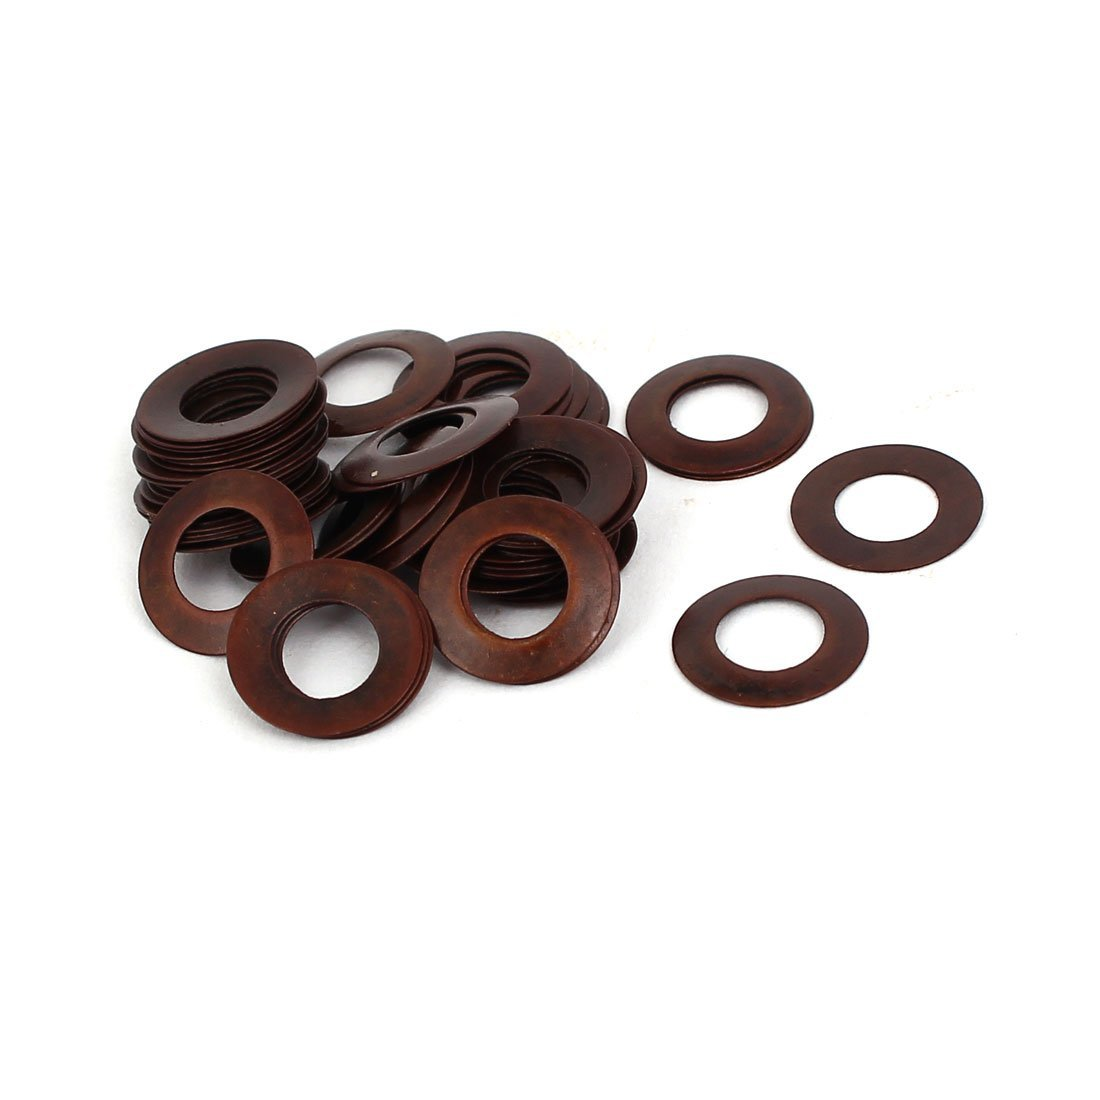 uxcell 10mm Outer Dia 5.2mm Inner Dia 0.25mm Thickness Belleville Spring Washer 50pcs